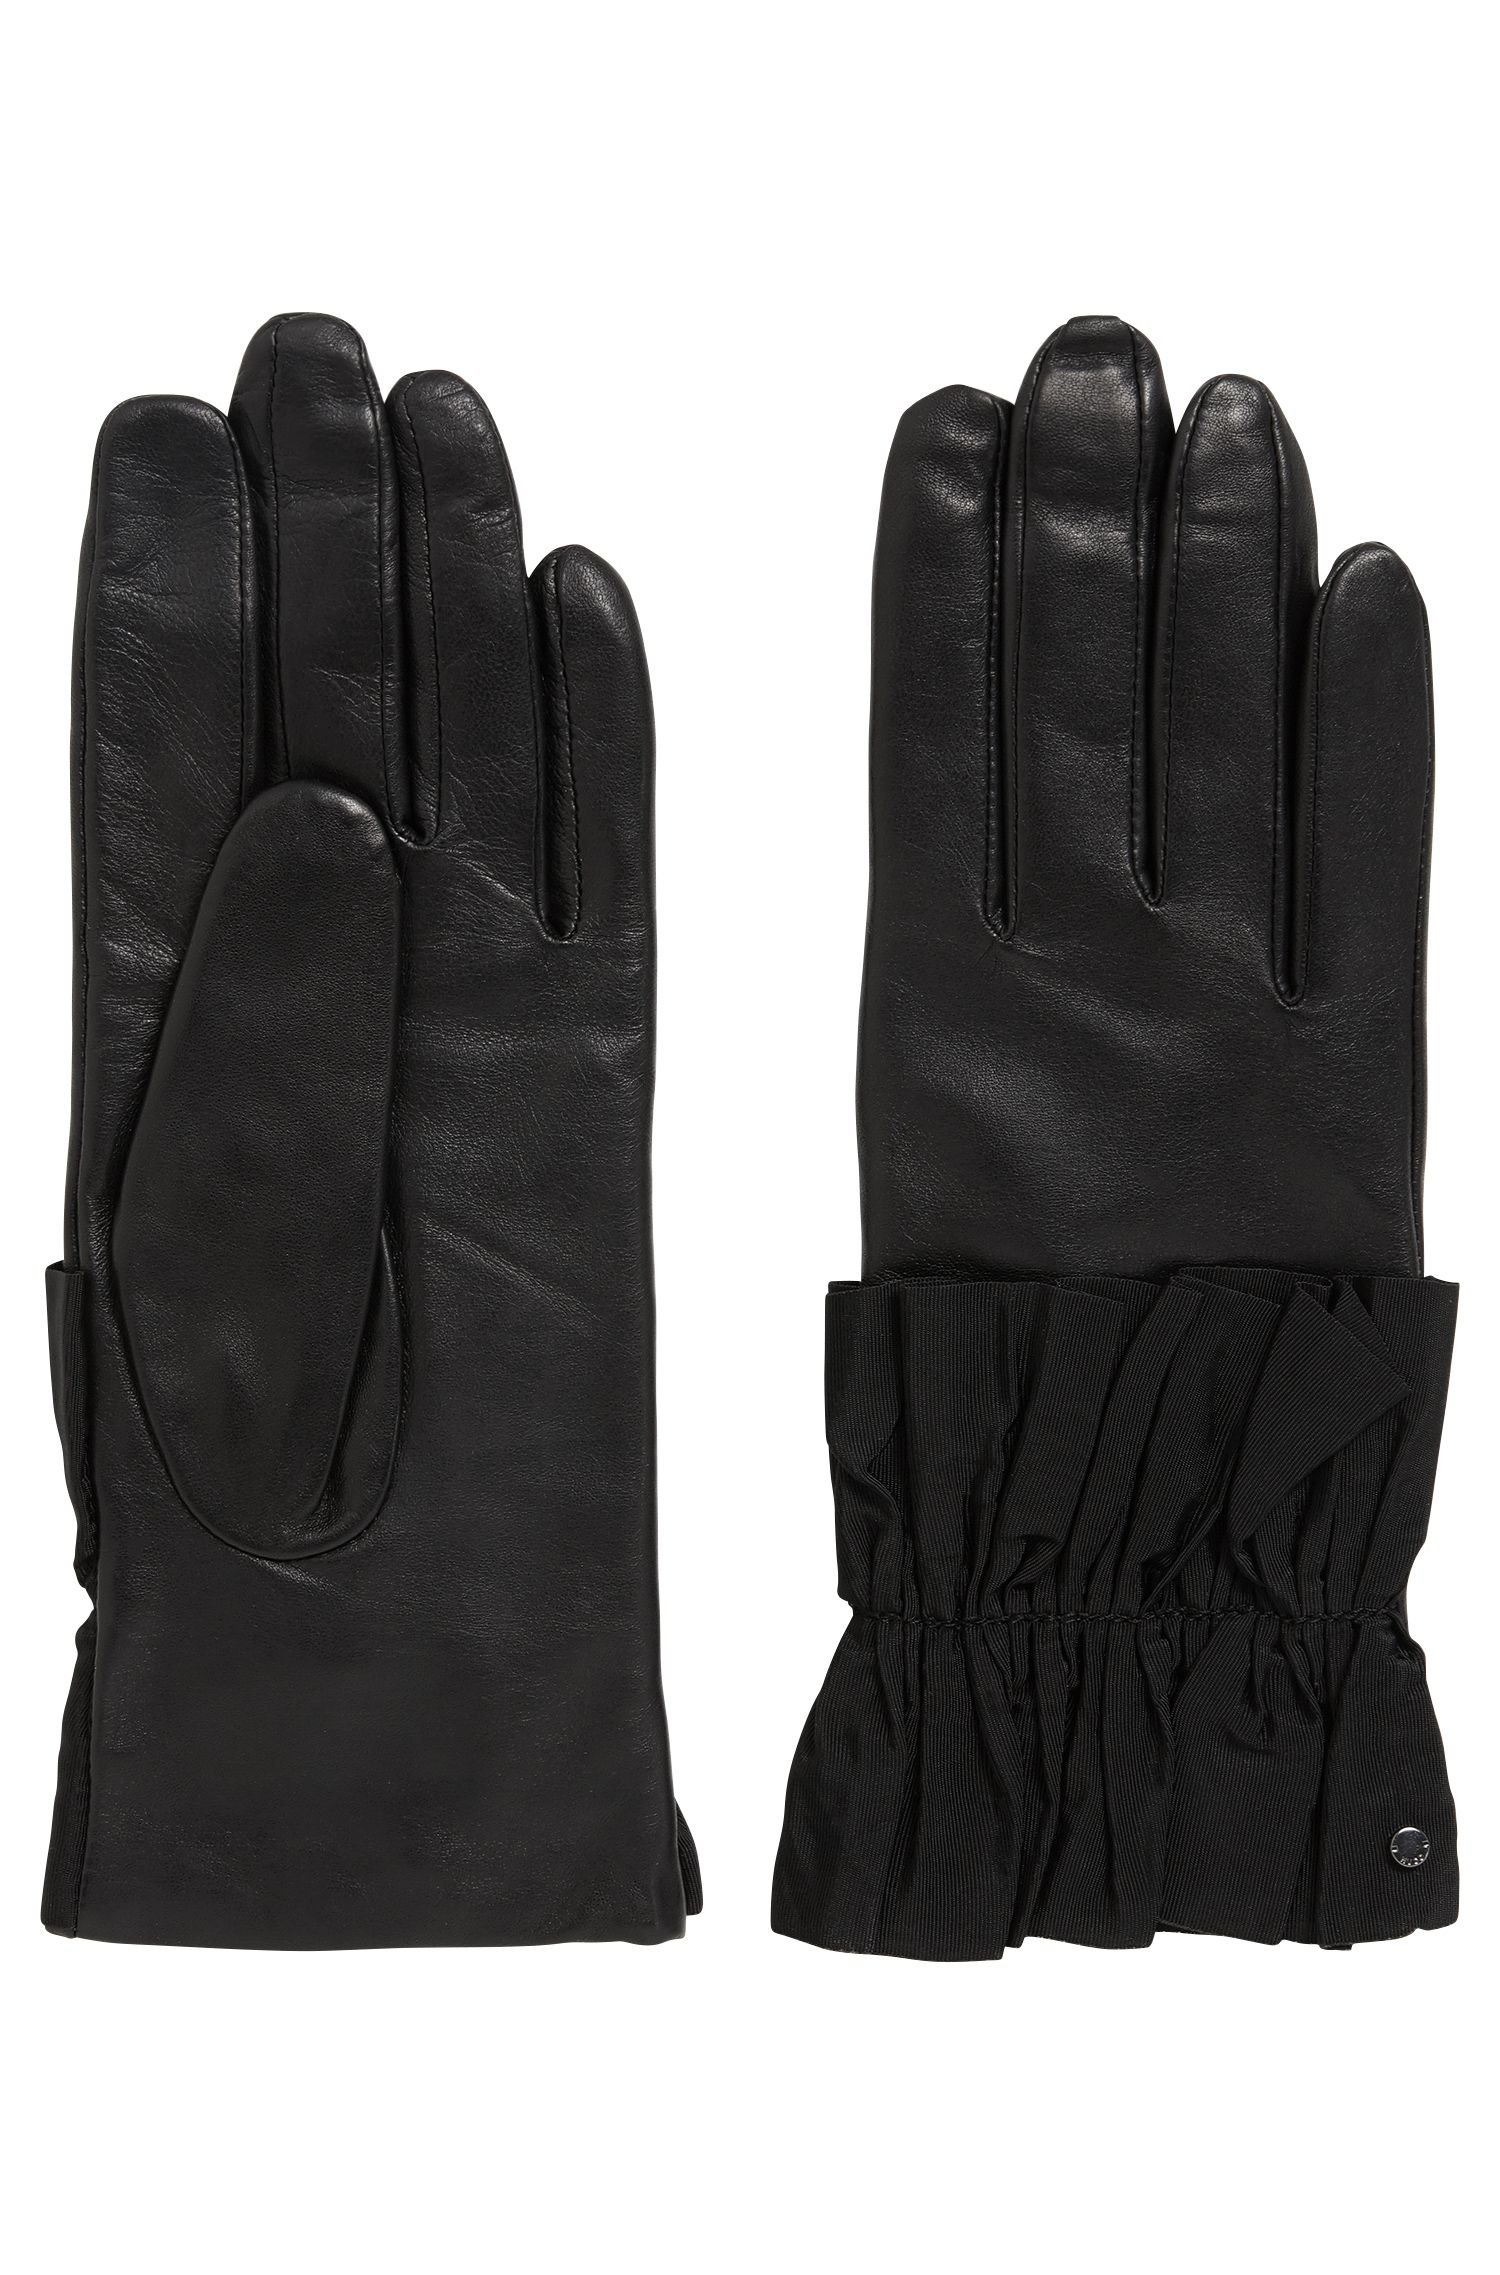 Leather gloves with ruched cuffs